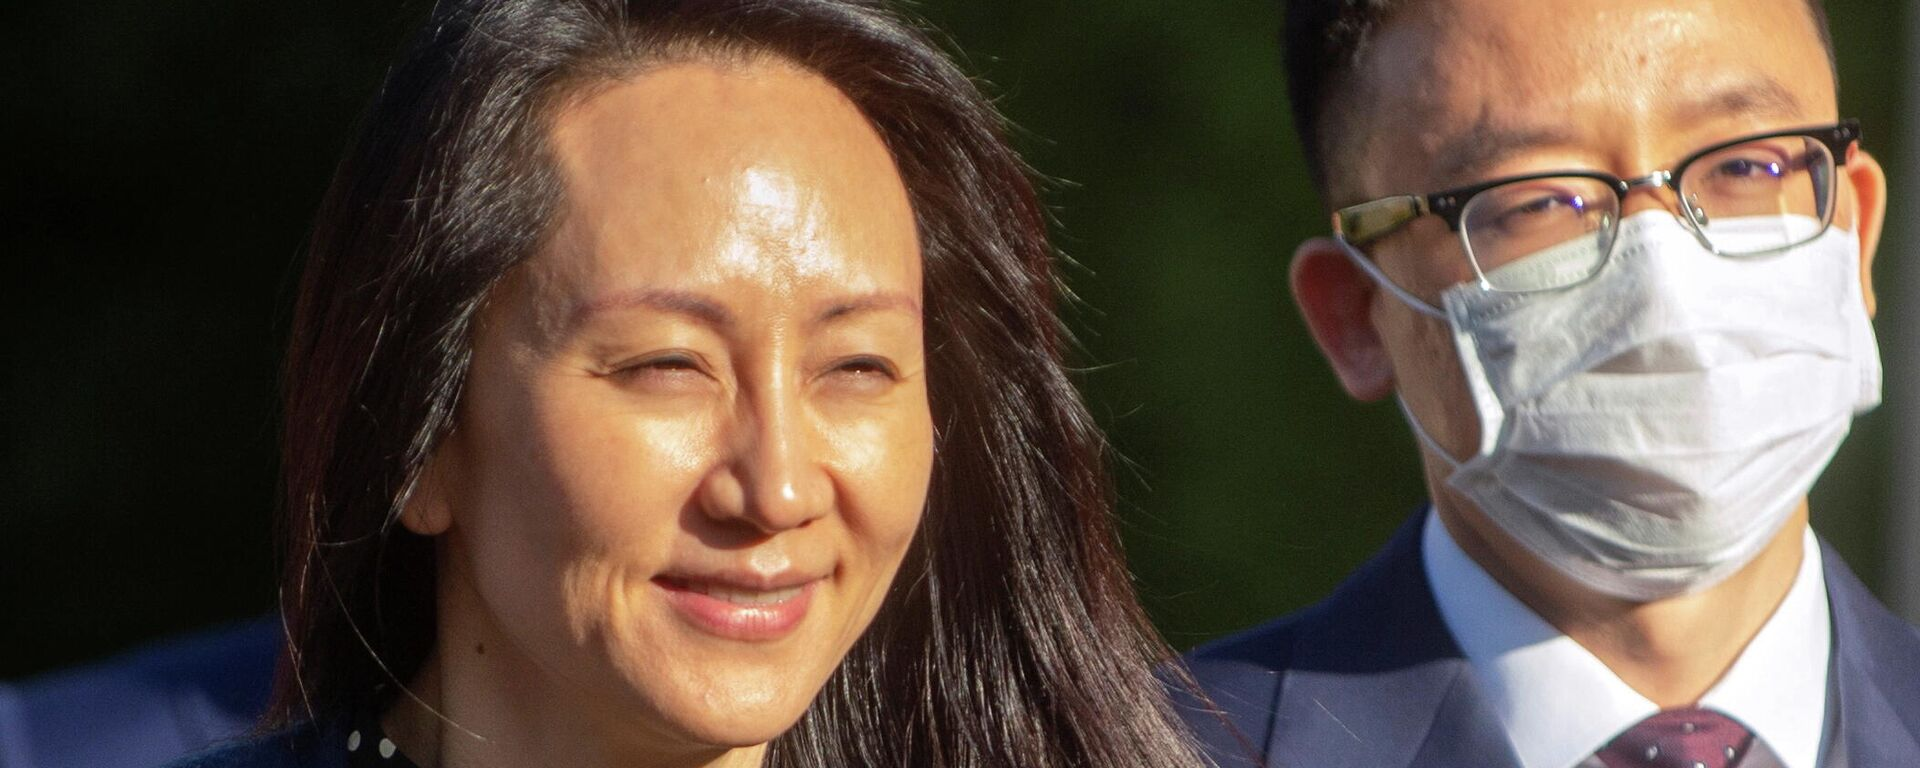 Huawei Technologies Chief Financial Officer Meng Wanzhou leaves her home to attend a virtual court hearing in Vancouver, British Columbia, Canada September 24, 2021.  REUTERS/Taehoon Kim - Sputnik International, 1920, 24.09.2021